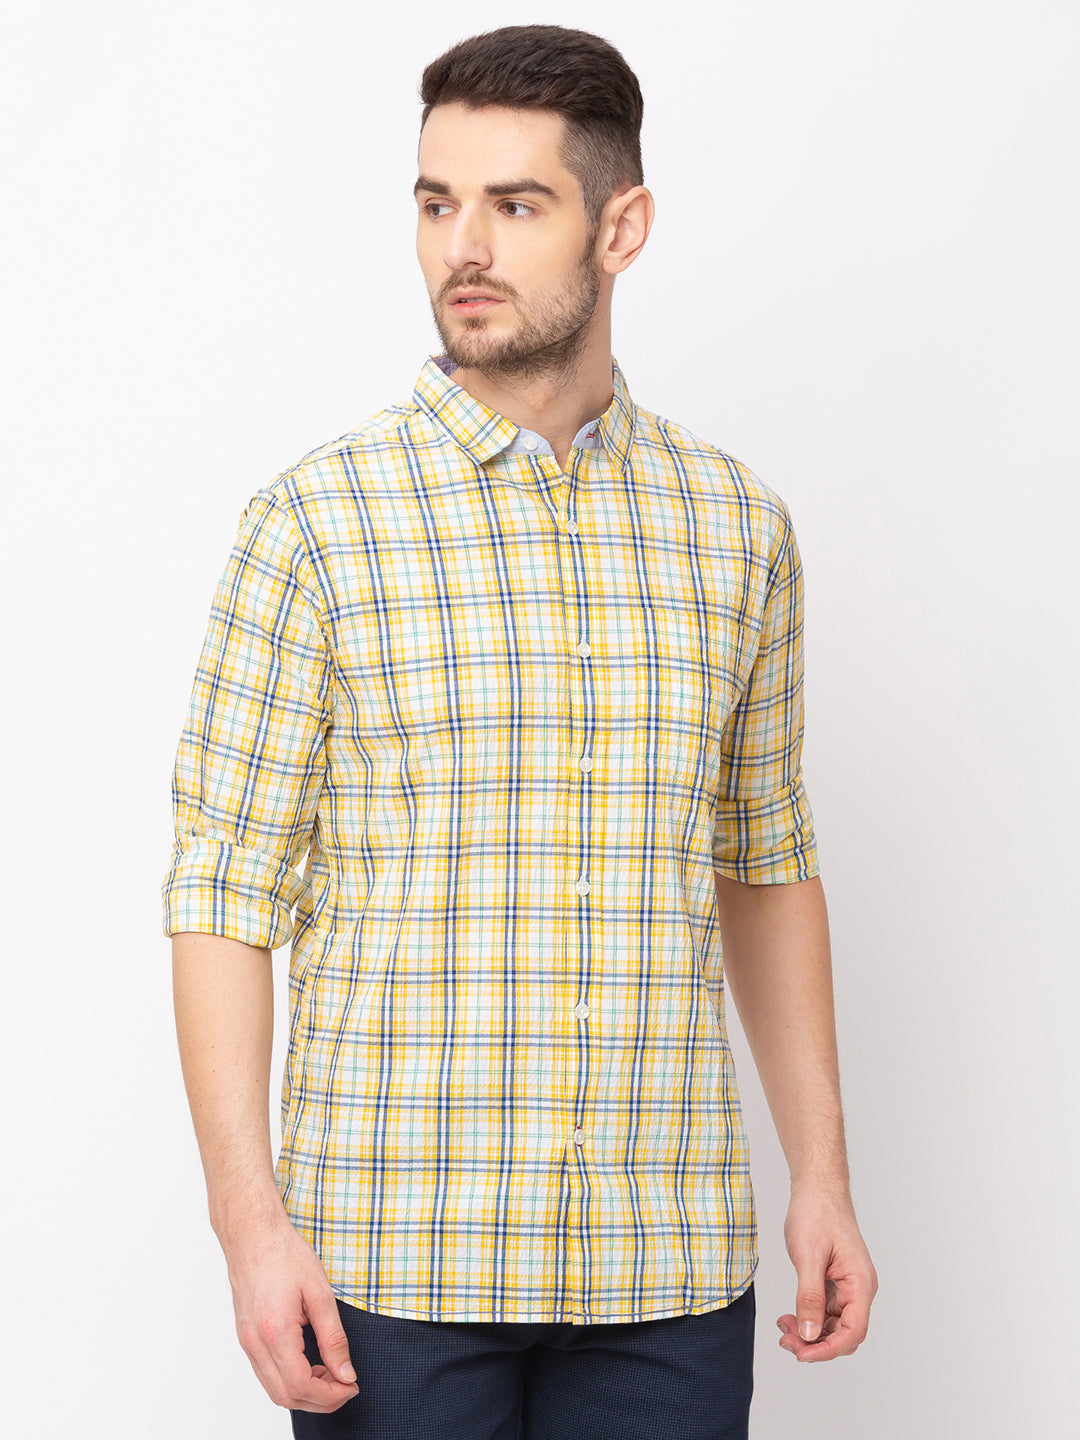 Globus Yellow Checked Shirt-1